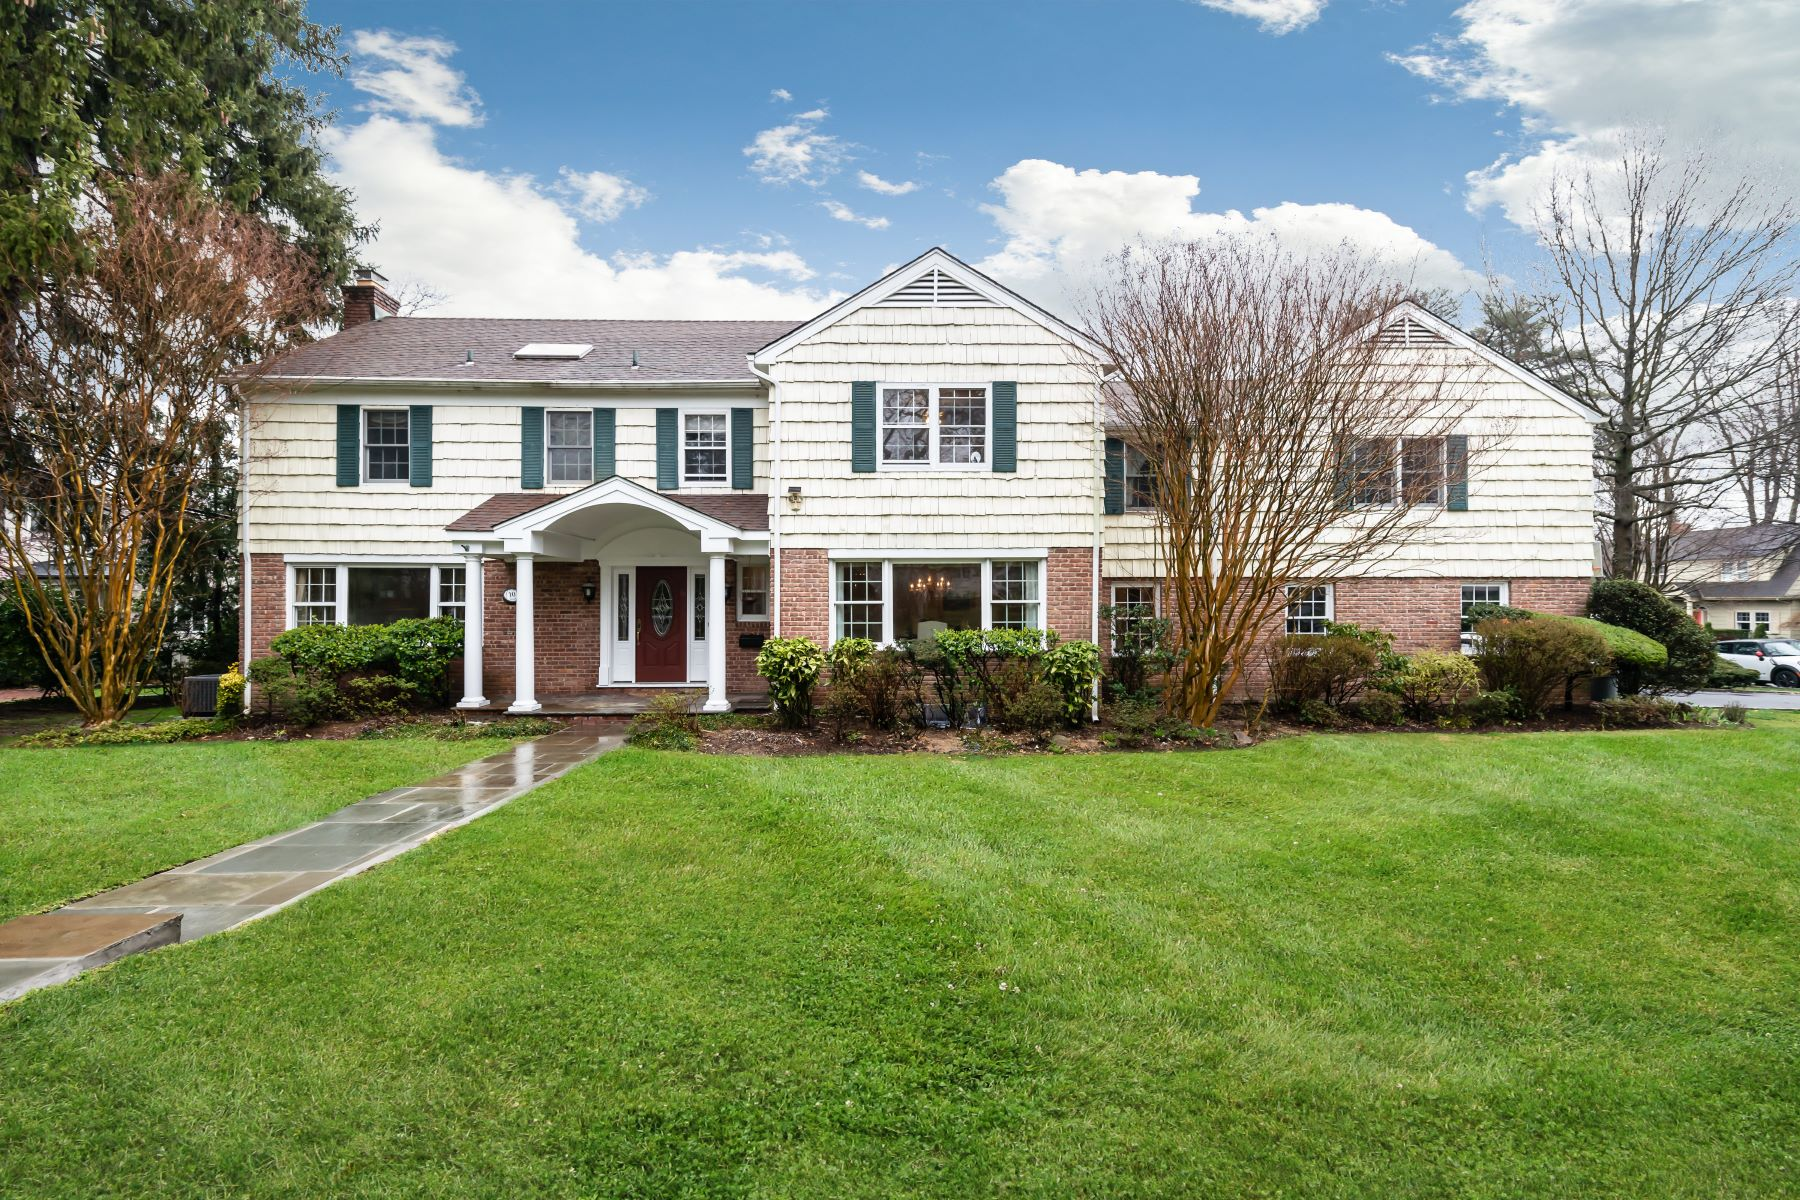 Single Family Homes for Active at Manhasset 10 Cross Road Manhasset, New York 11030 United States